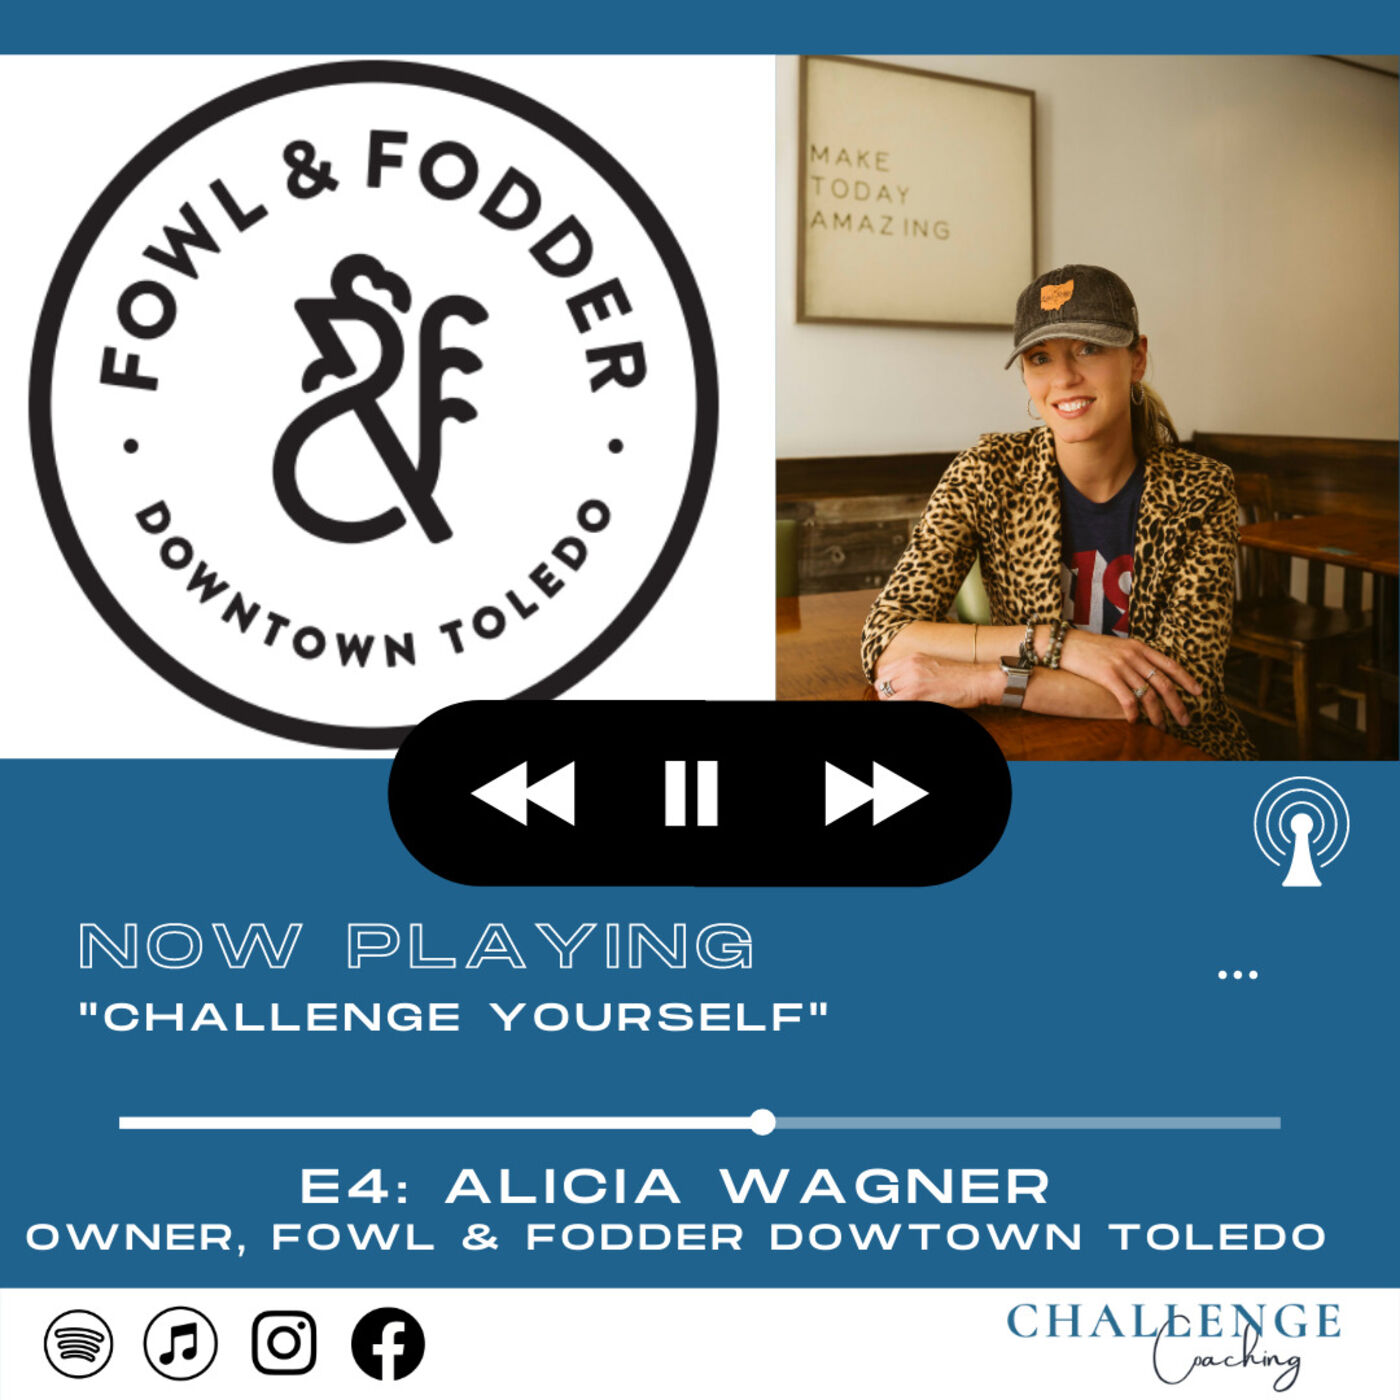 E4: Alicia Wagner: Owner of Fowl & Fodder Downtown